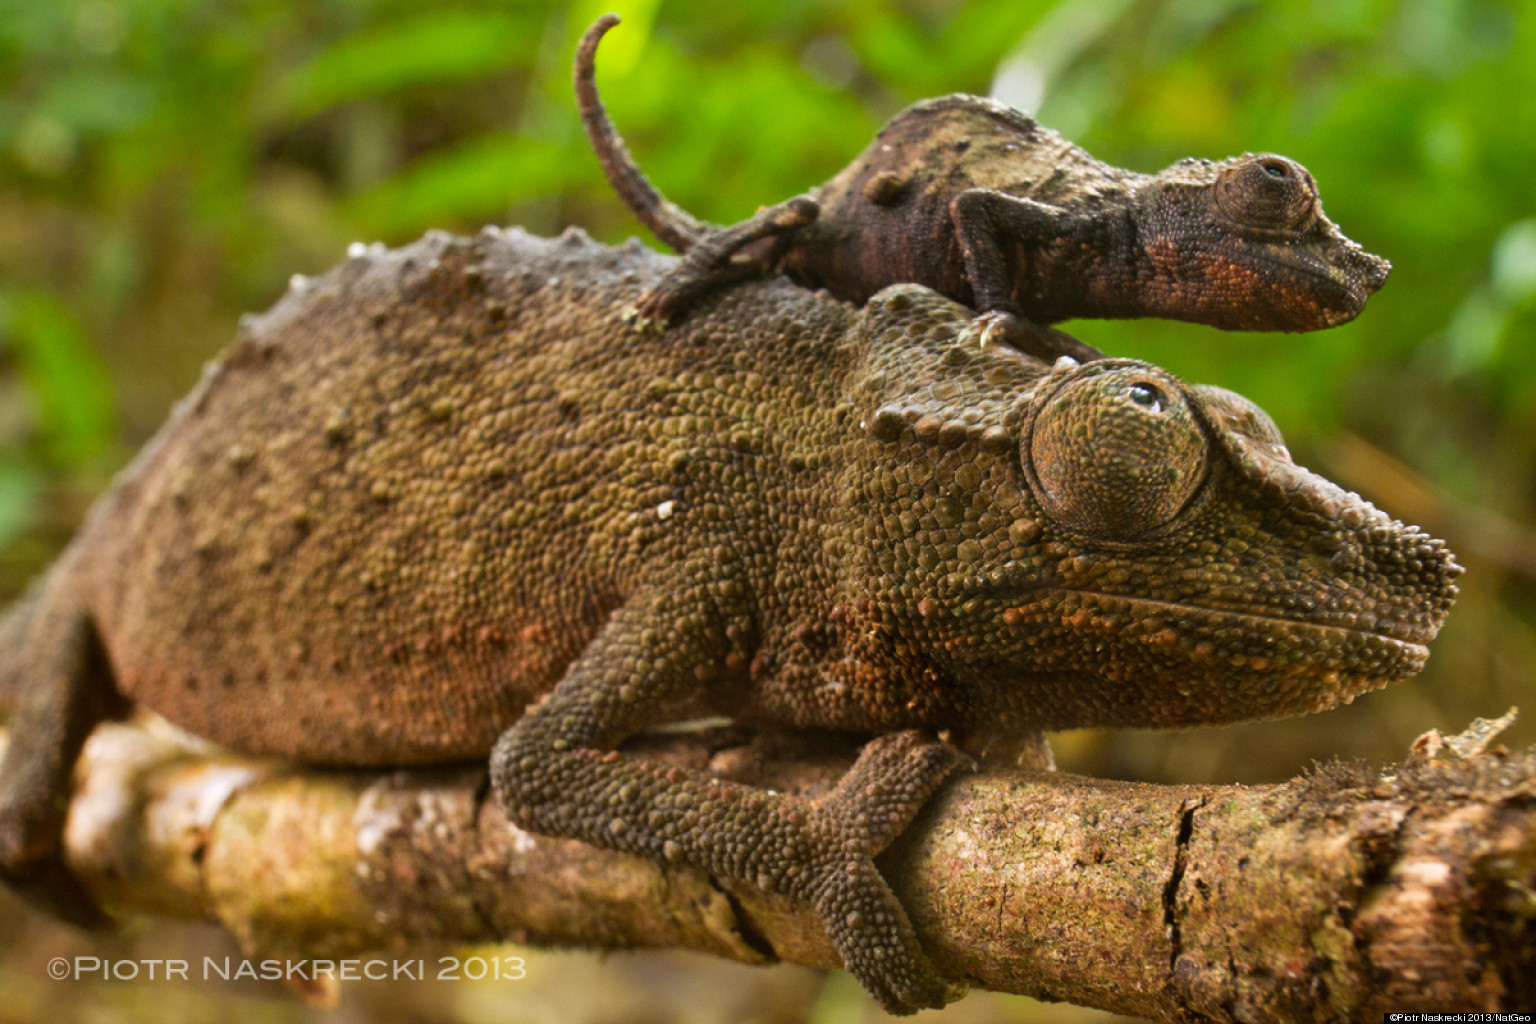 Pygmy Chameleon Photos Show Stunning Creature In Natural